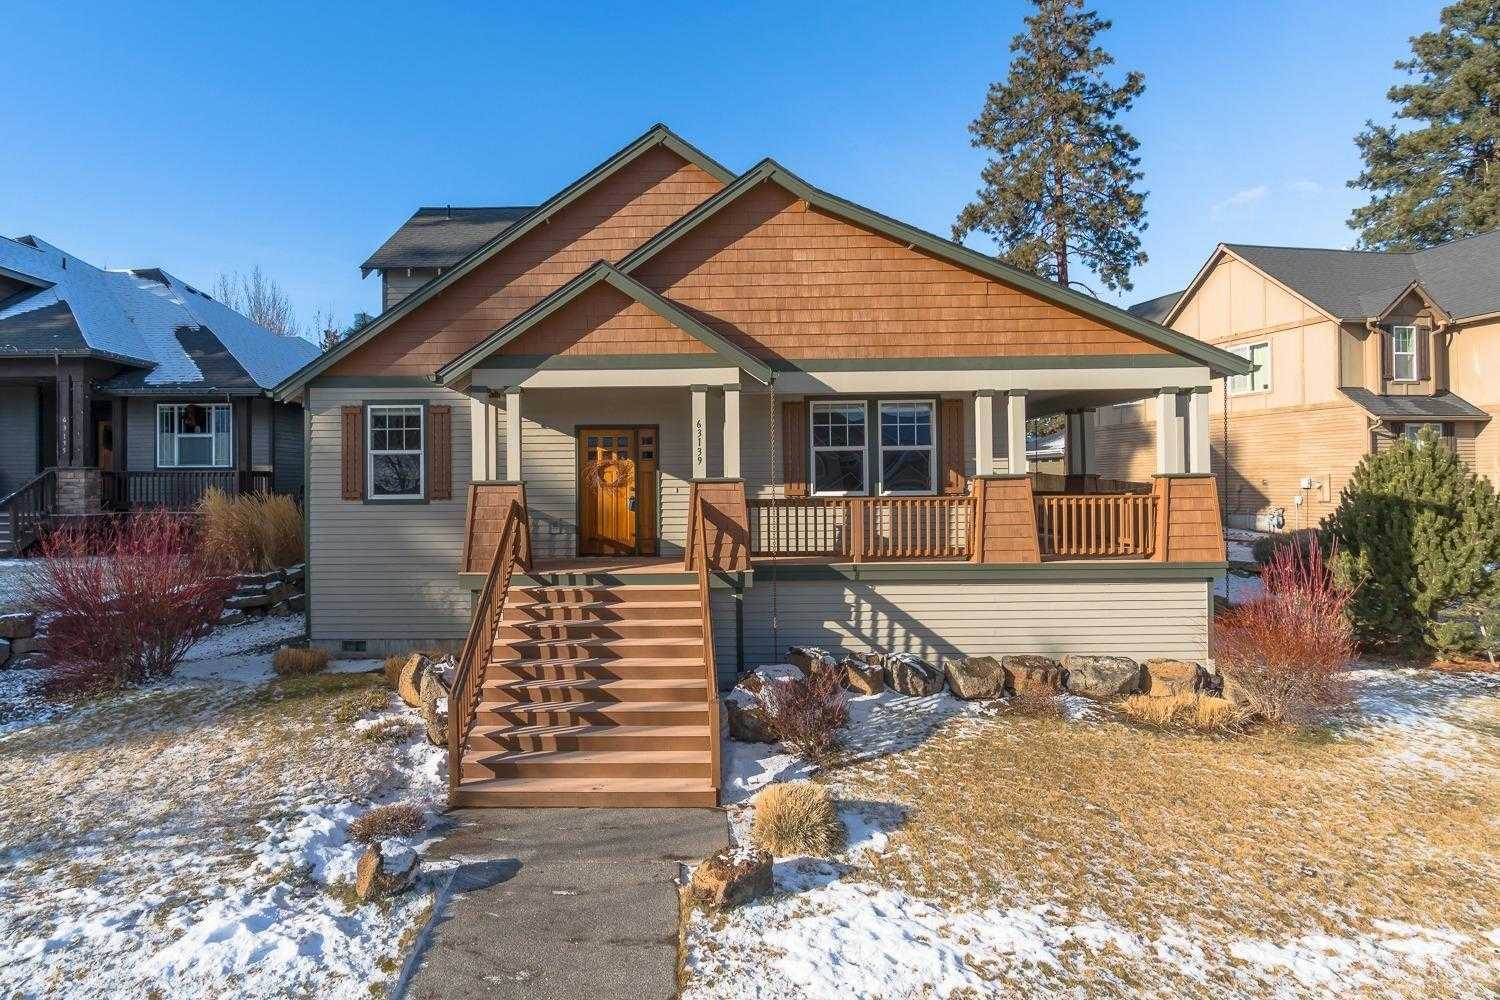 $545,000 - 4Br/3Ba -  for Sale in Bend